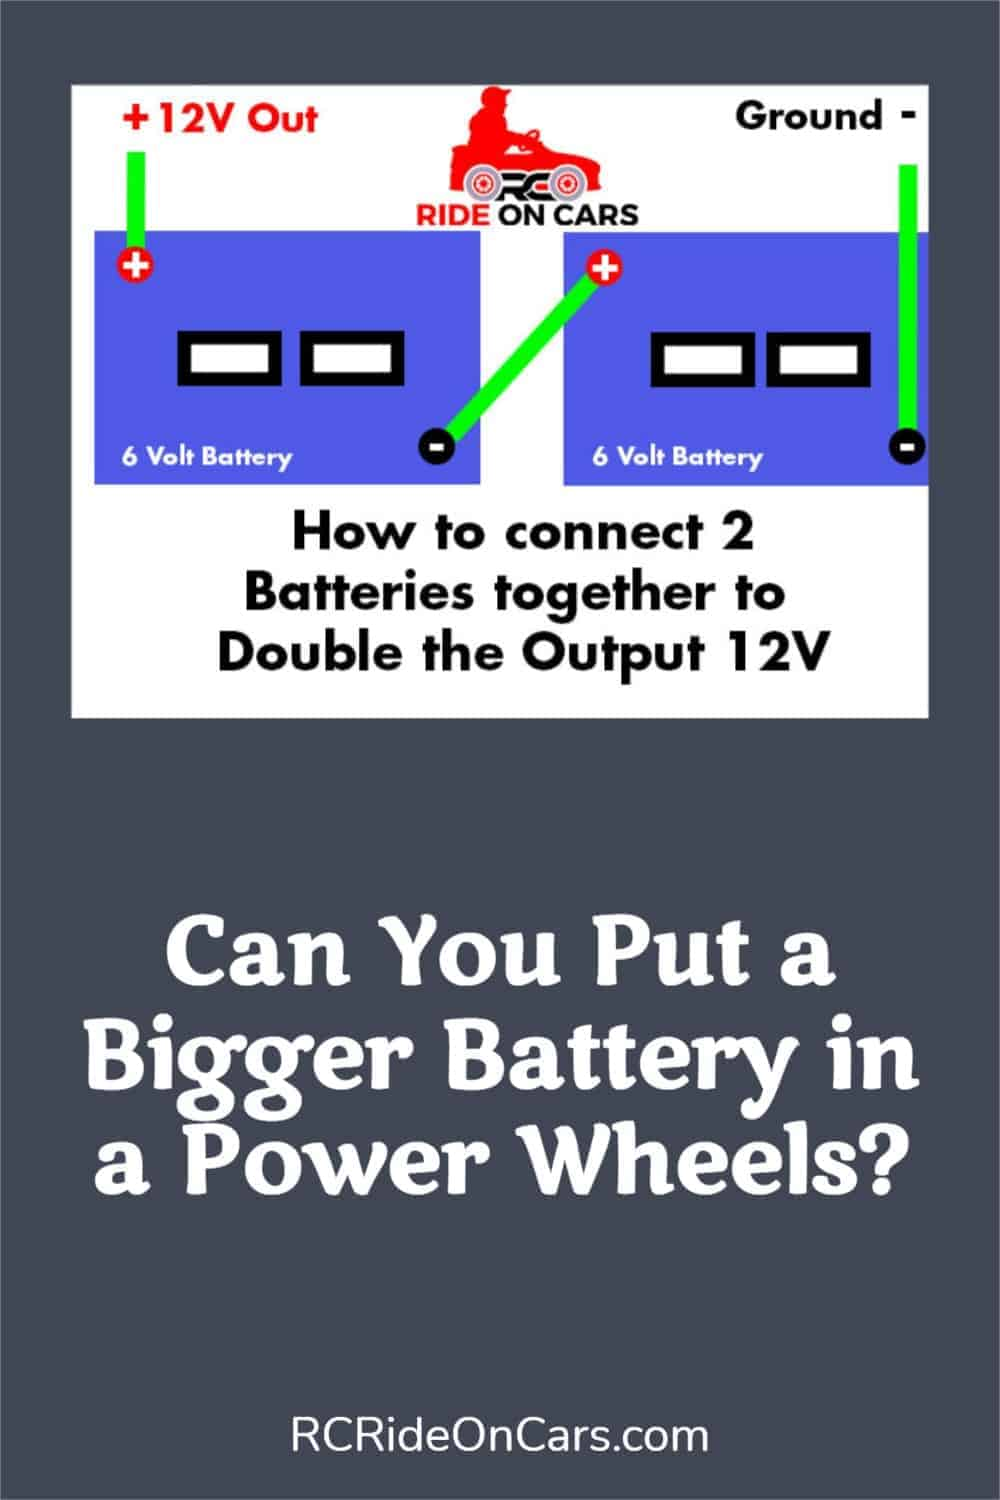 Can You Put A Bigger Battery in a Power Wheels